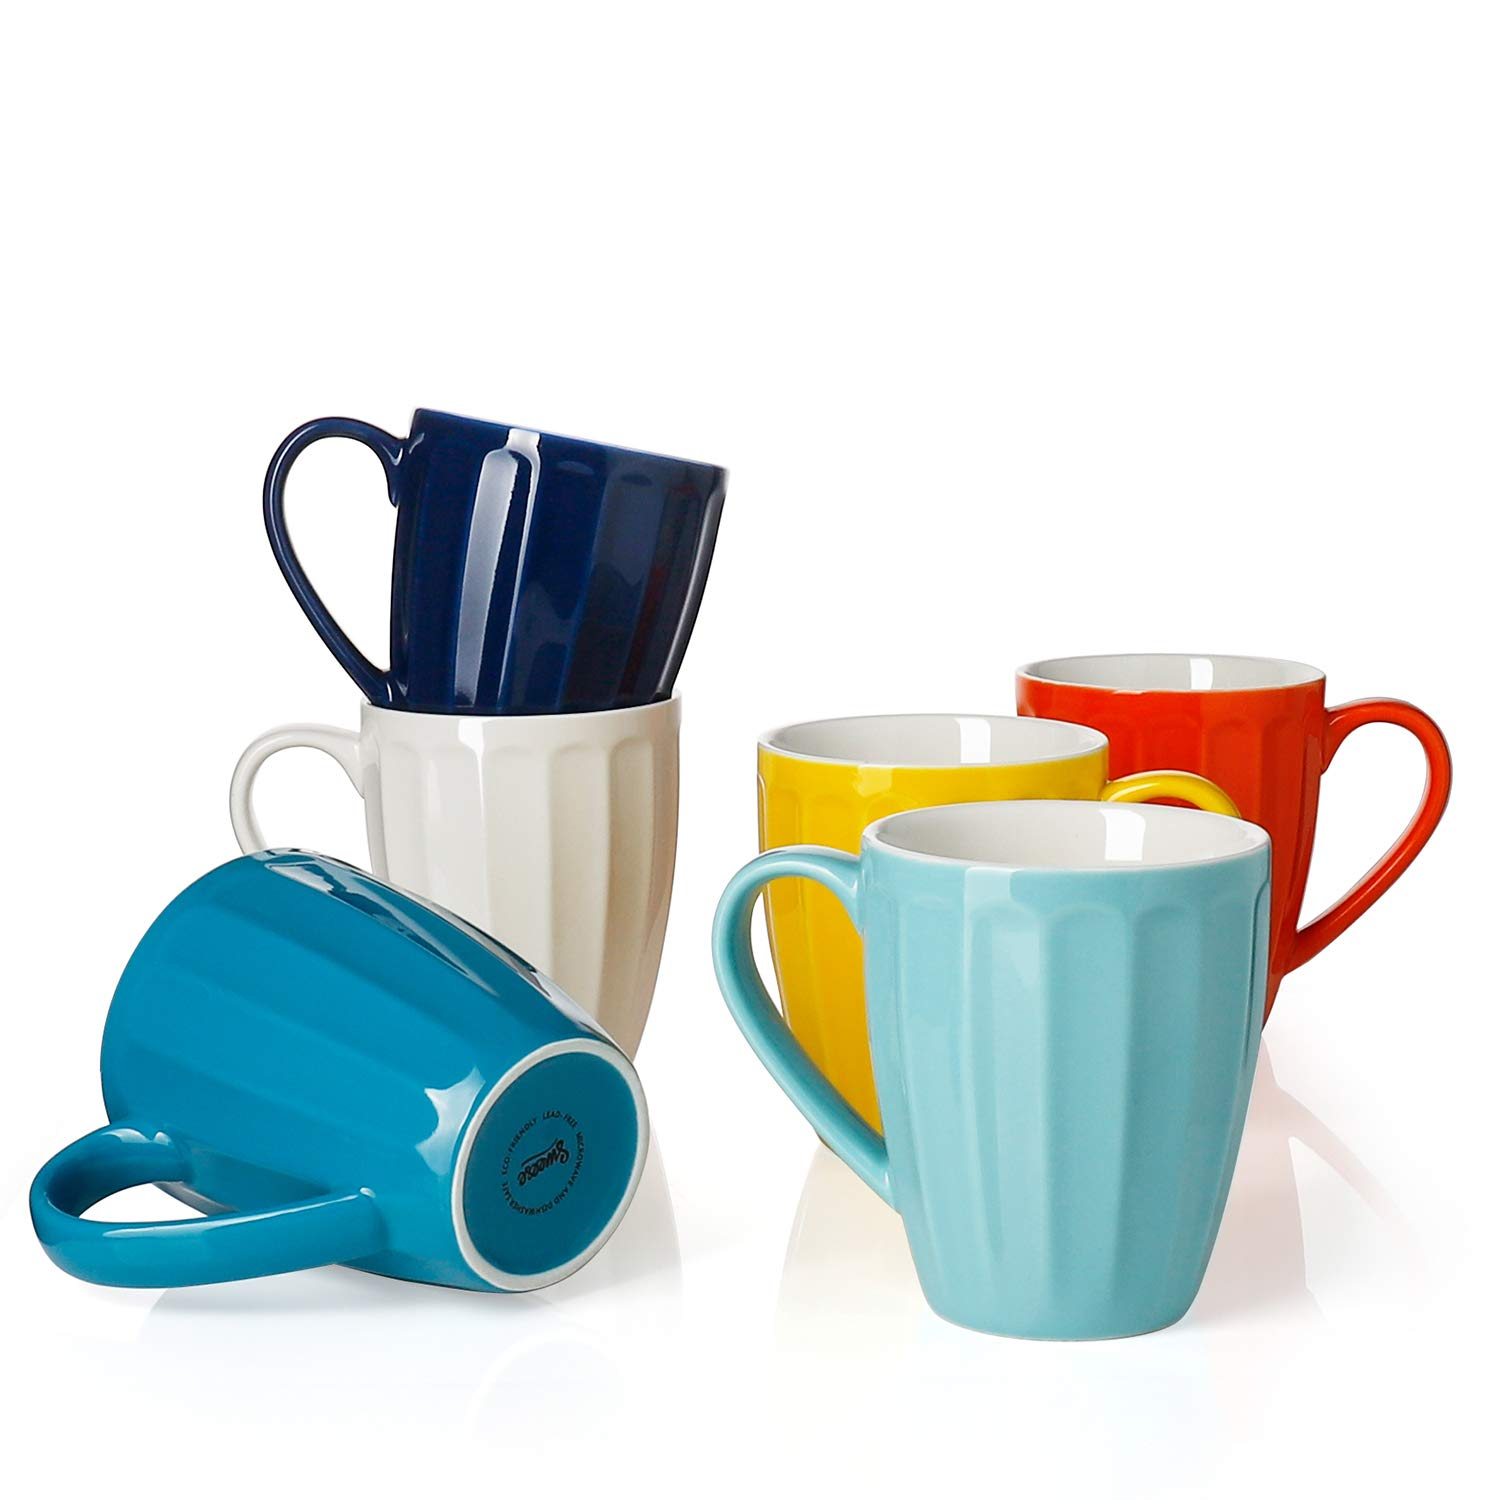 Sweese 6209 Porcelain Mugs - 14 Ounce for Coffee, Tea, Cocoa, Set of 6, Fluted mugs, Hot Assorted Colors